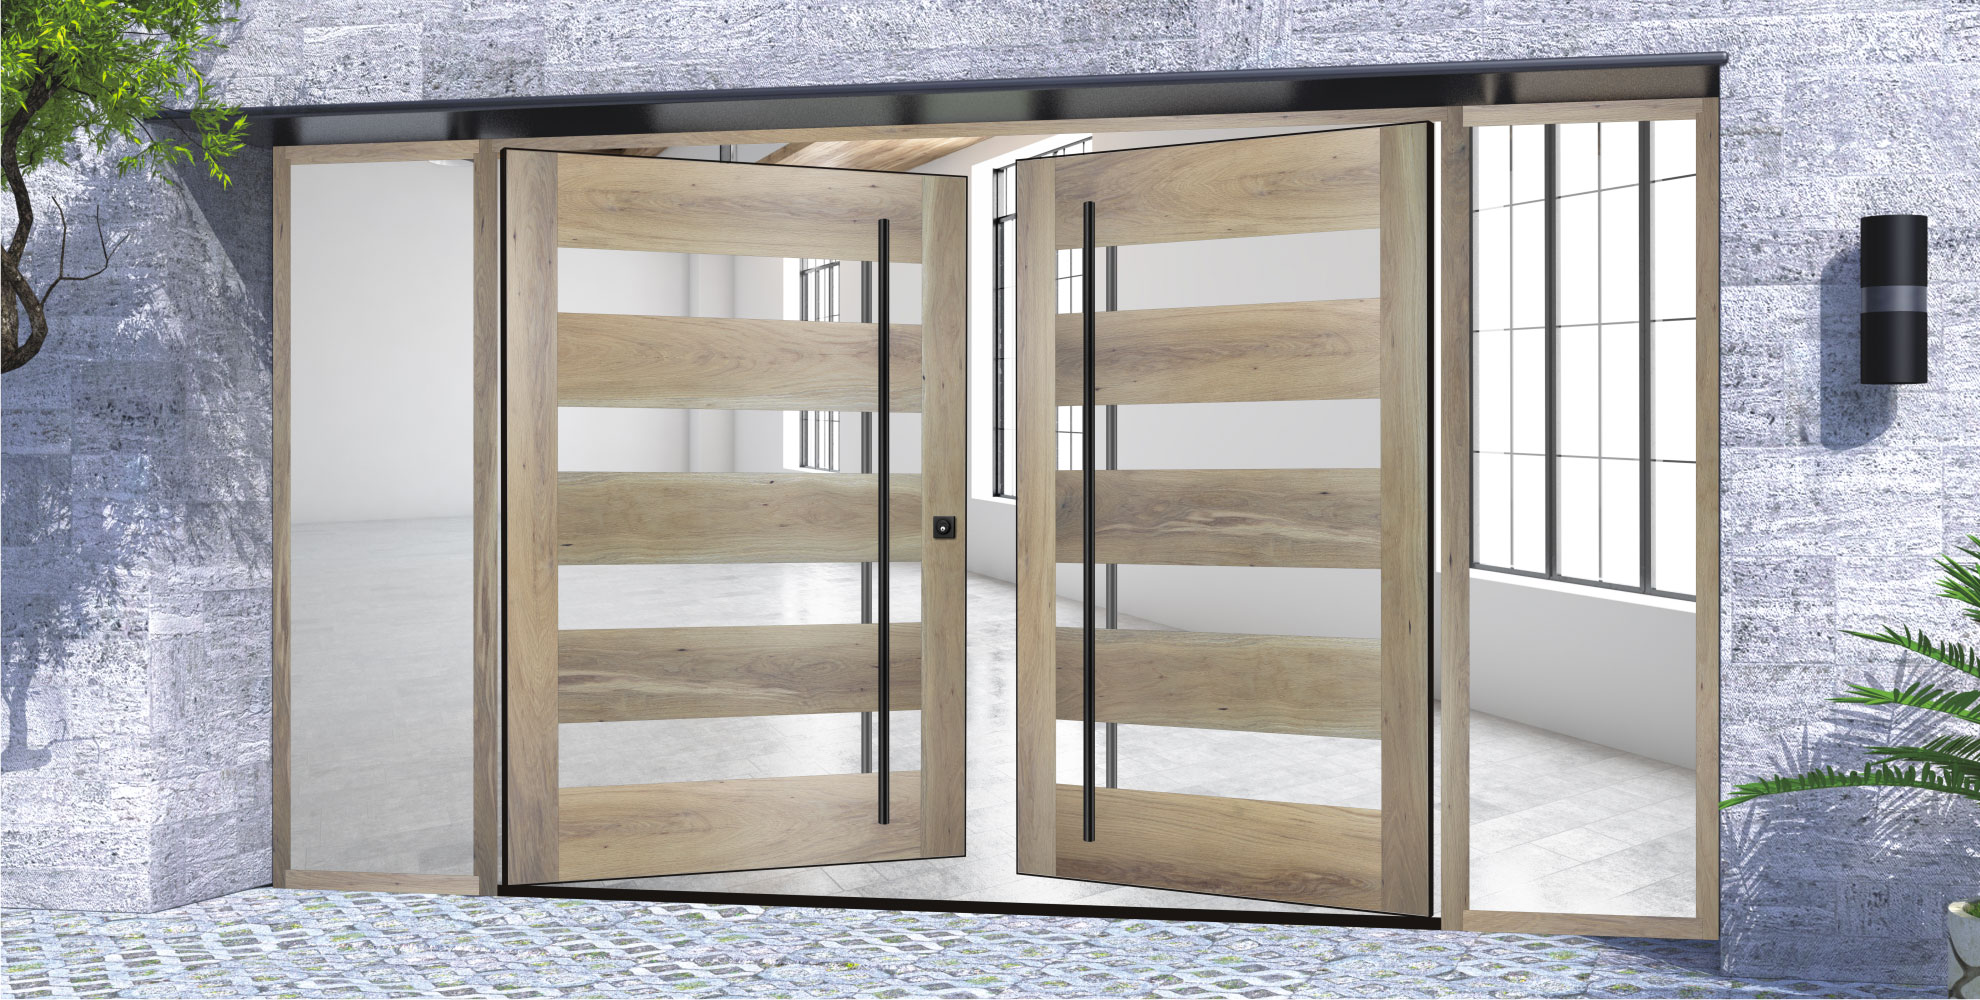 authentic white oak wood and glass double door design with black door hardware and sidelights